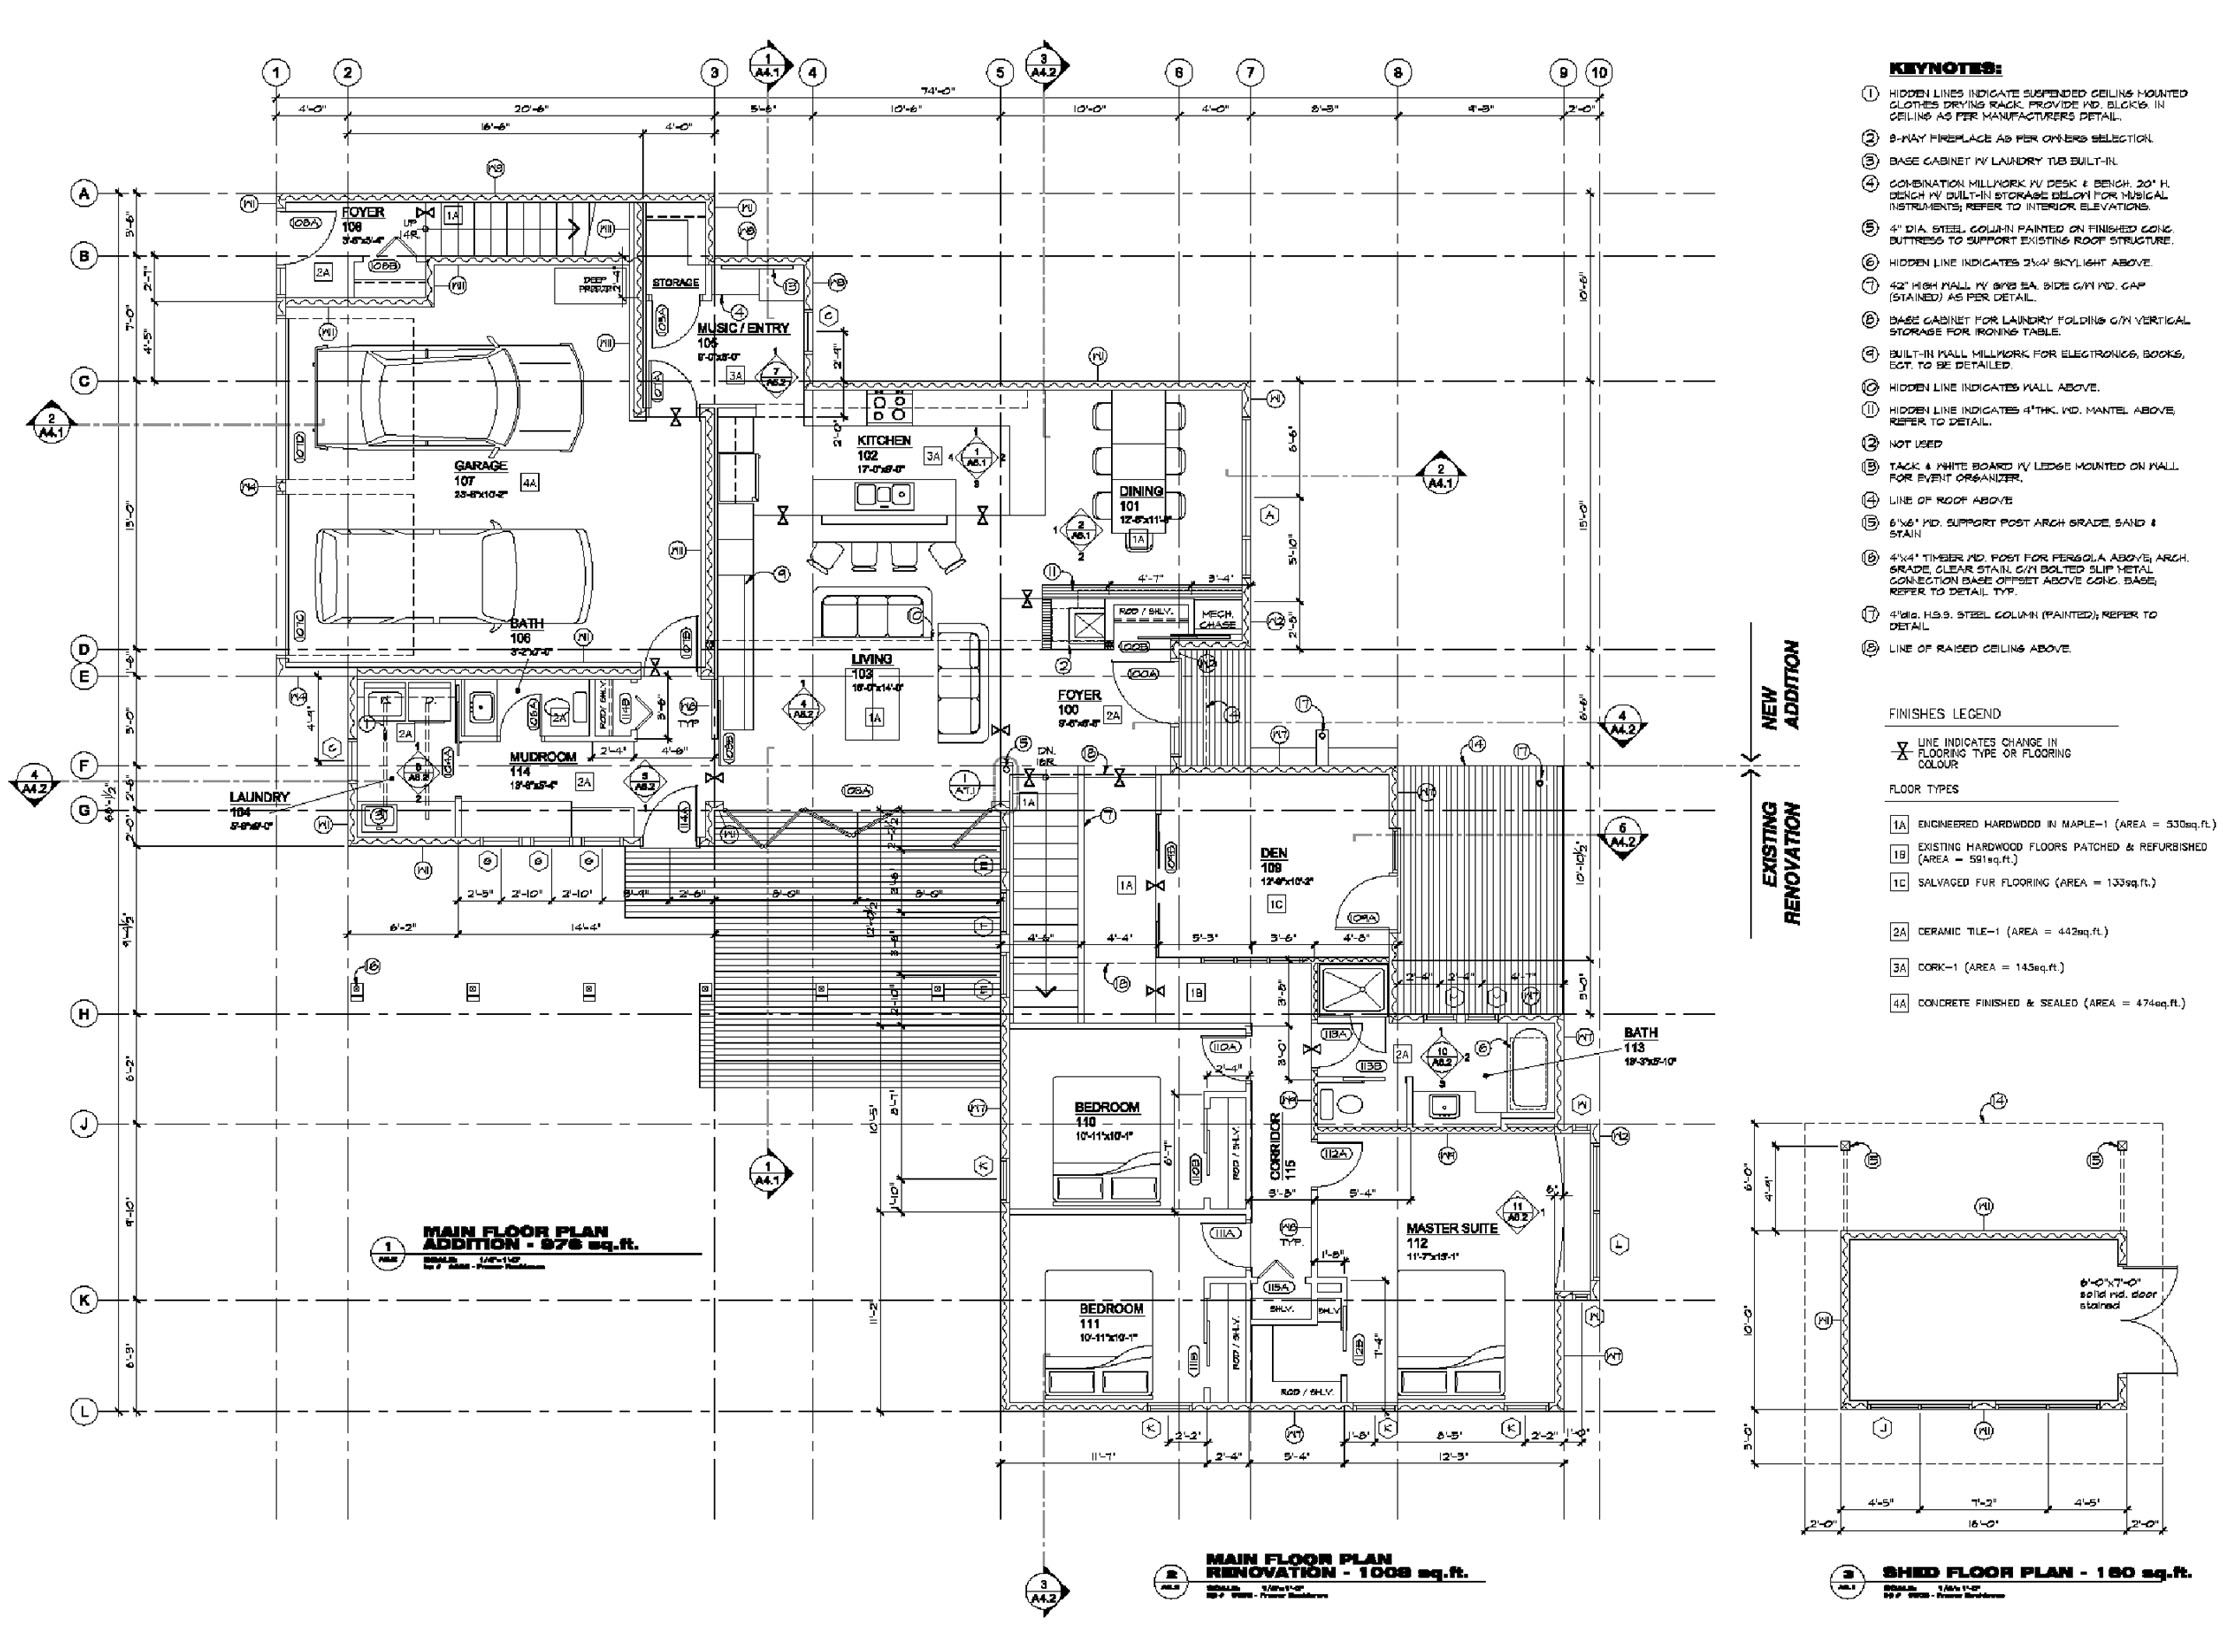 404 Not Found Floor Plan With Dimensions Floor Plans How To Plan